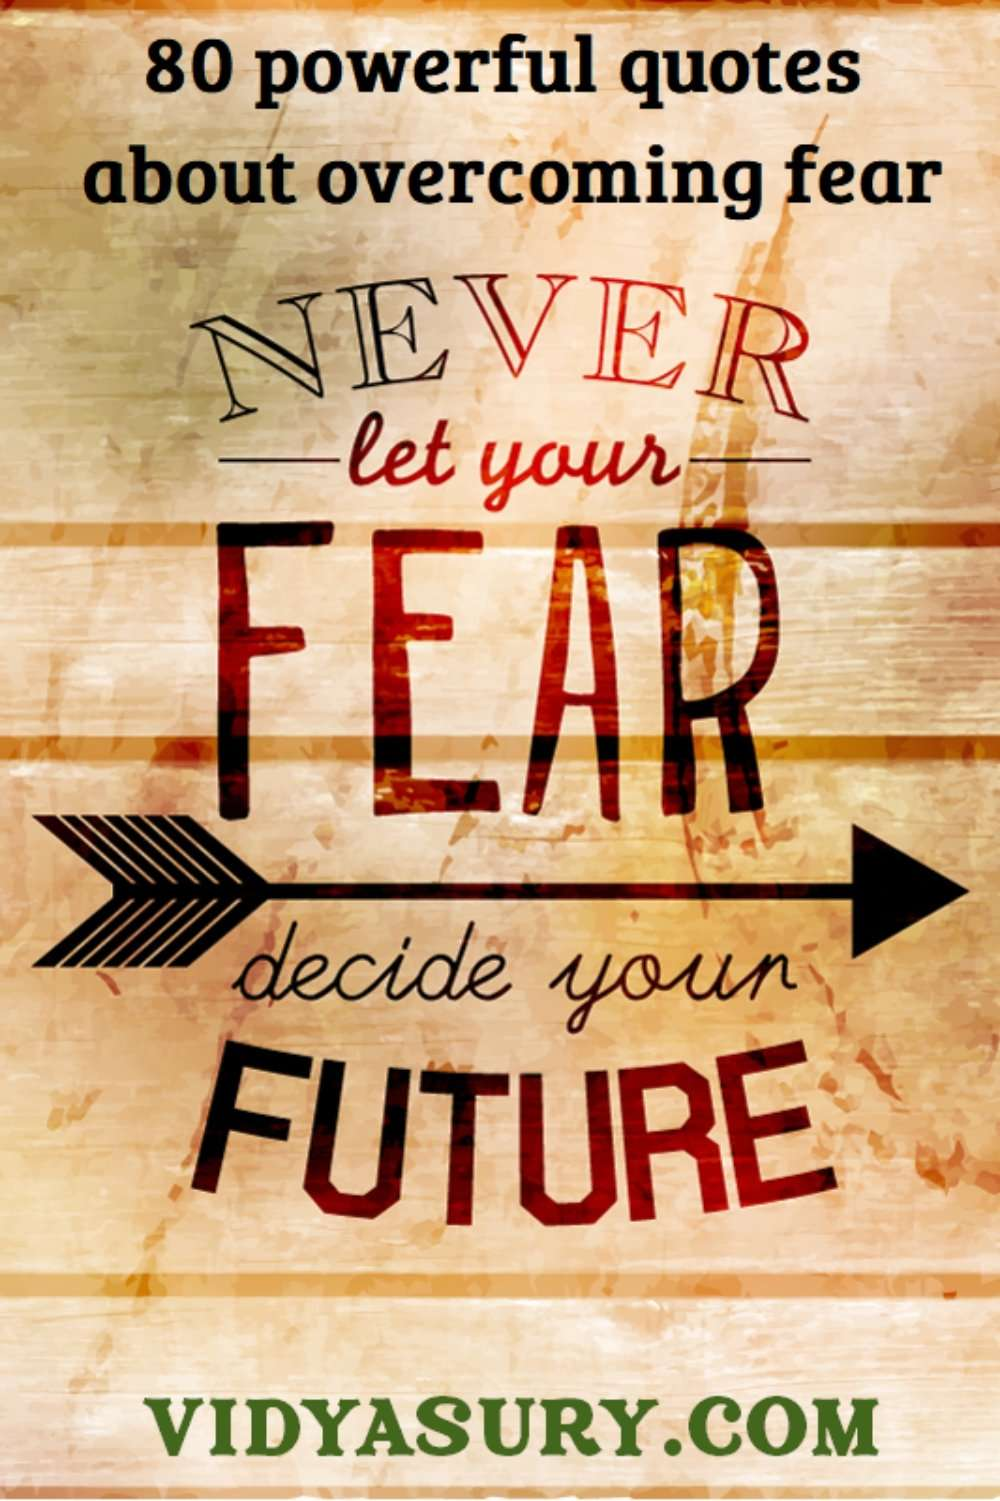 Never let your fear decide your future Quotes to overcome fear